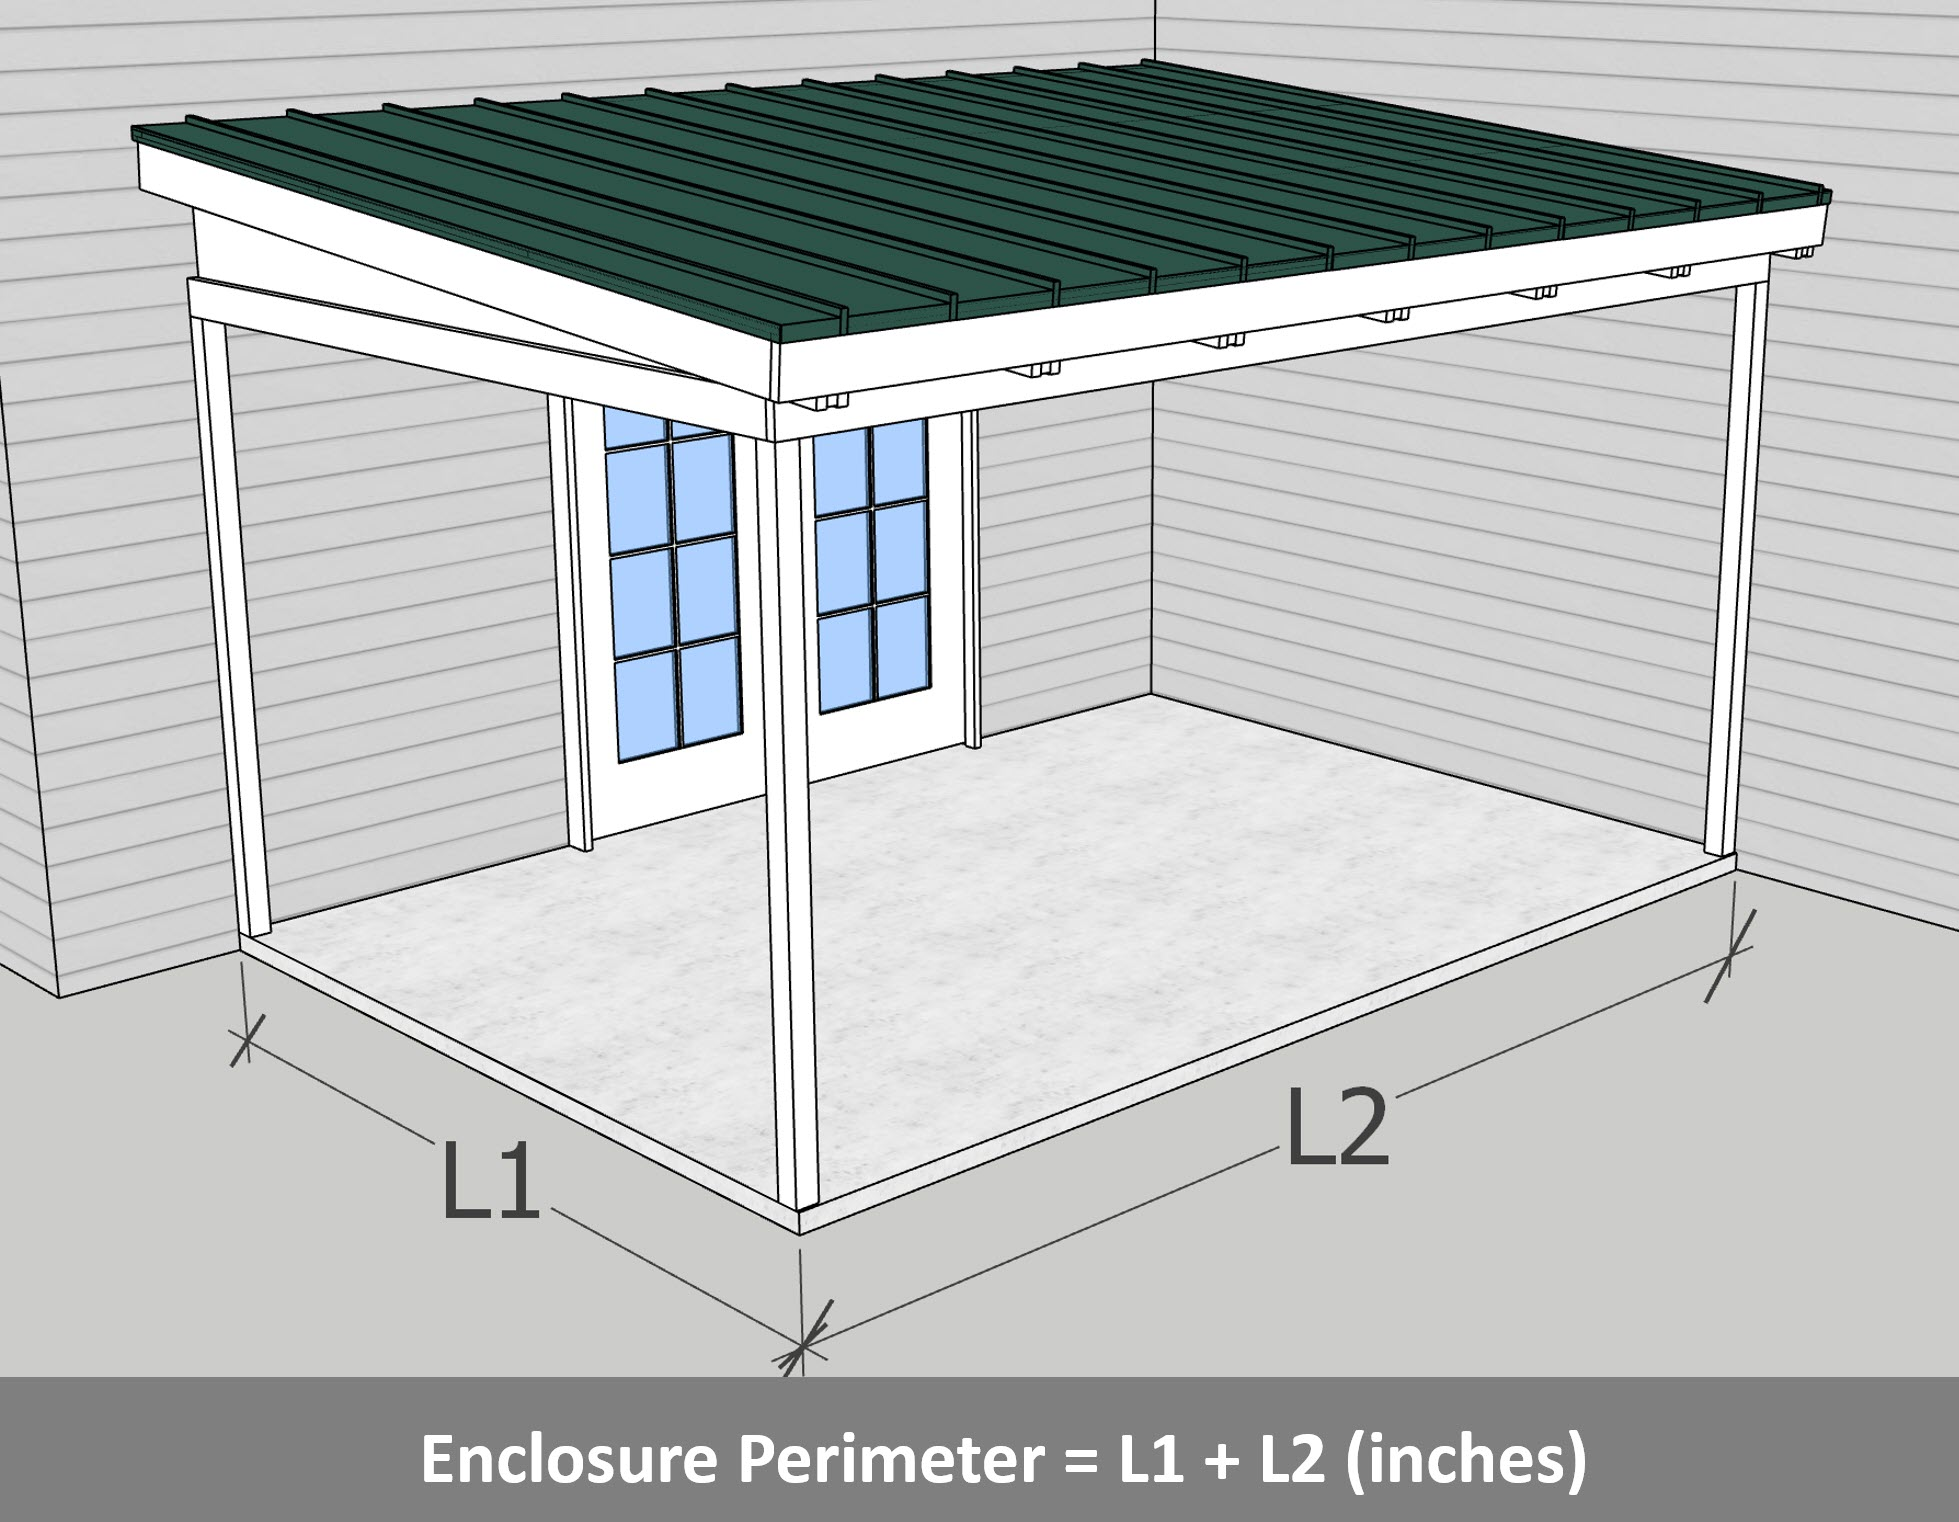 calculate enclosure perimeter